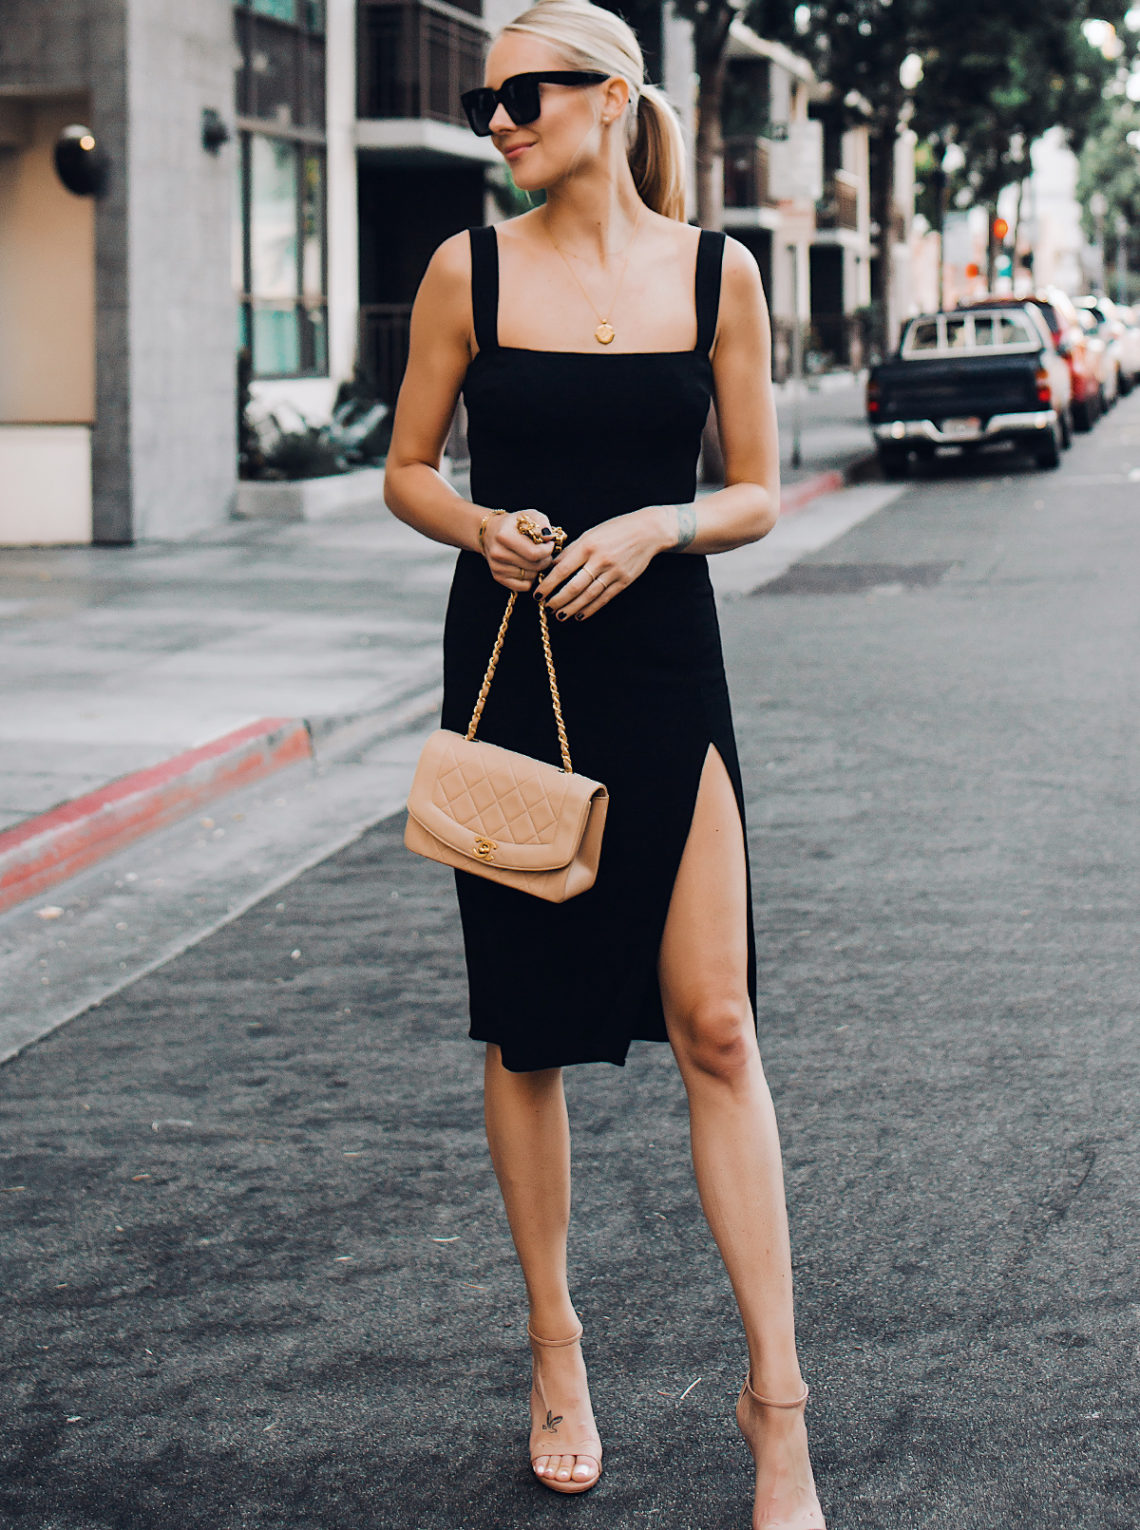 Blonde Woman Wearing Reformation Black Dress Tan Ankle Strap Heeled Sandals Chanel Tan Diana Handbag Gold Coin Necklace Fashion Jackson San Diego Fashion Blogger Street Style